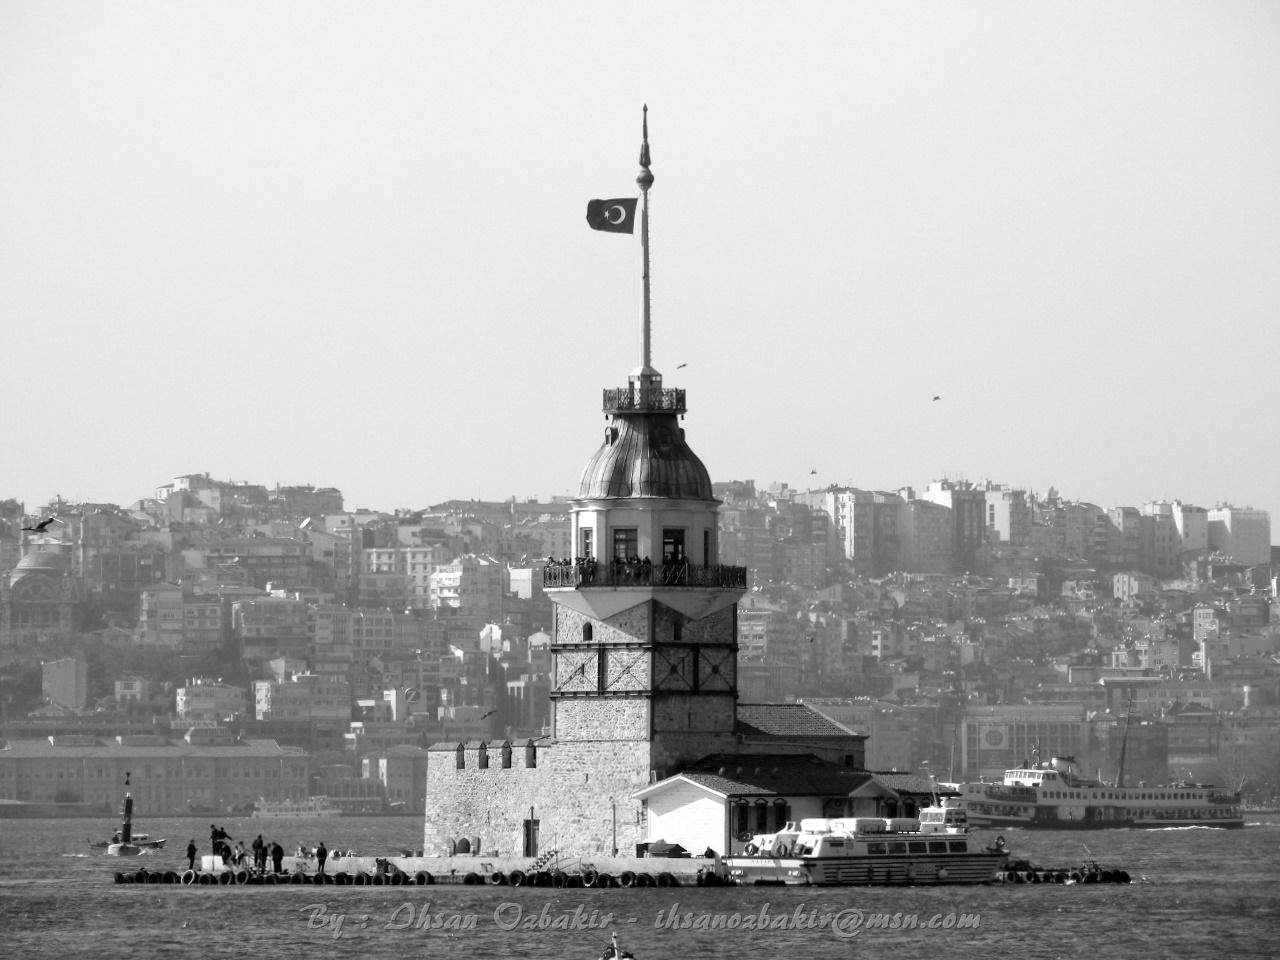 Photograph Kiz Kulesi - Istanbul by Ihsan Ozbakir on 500px